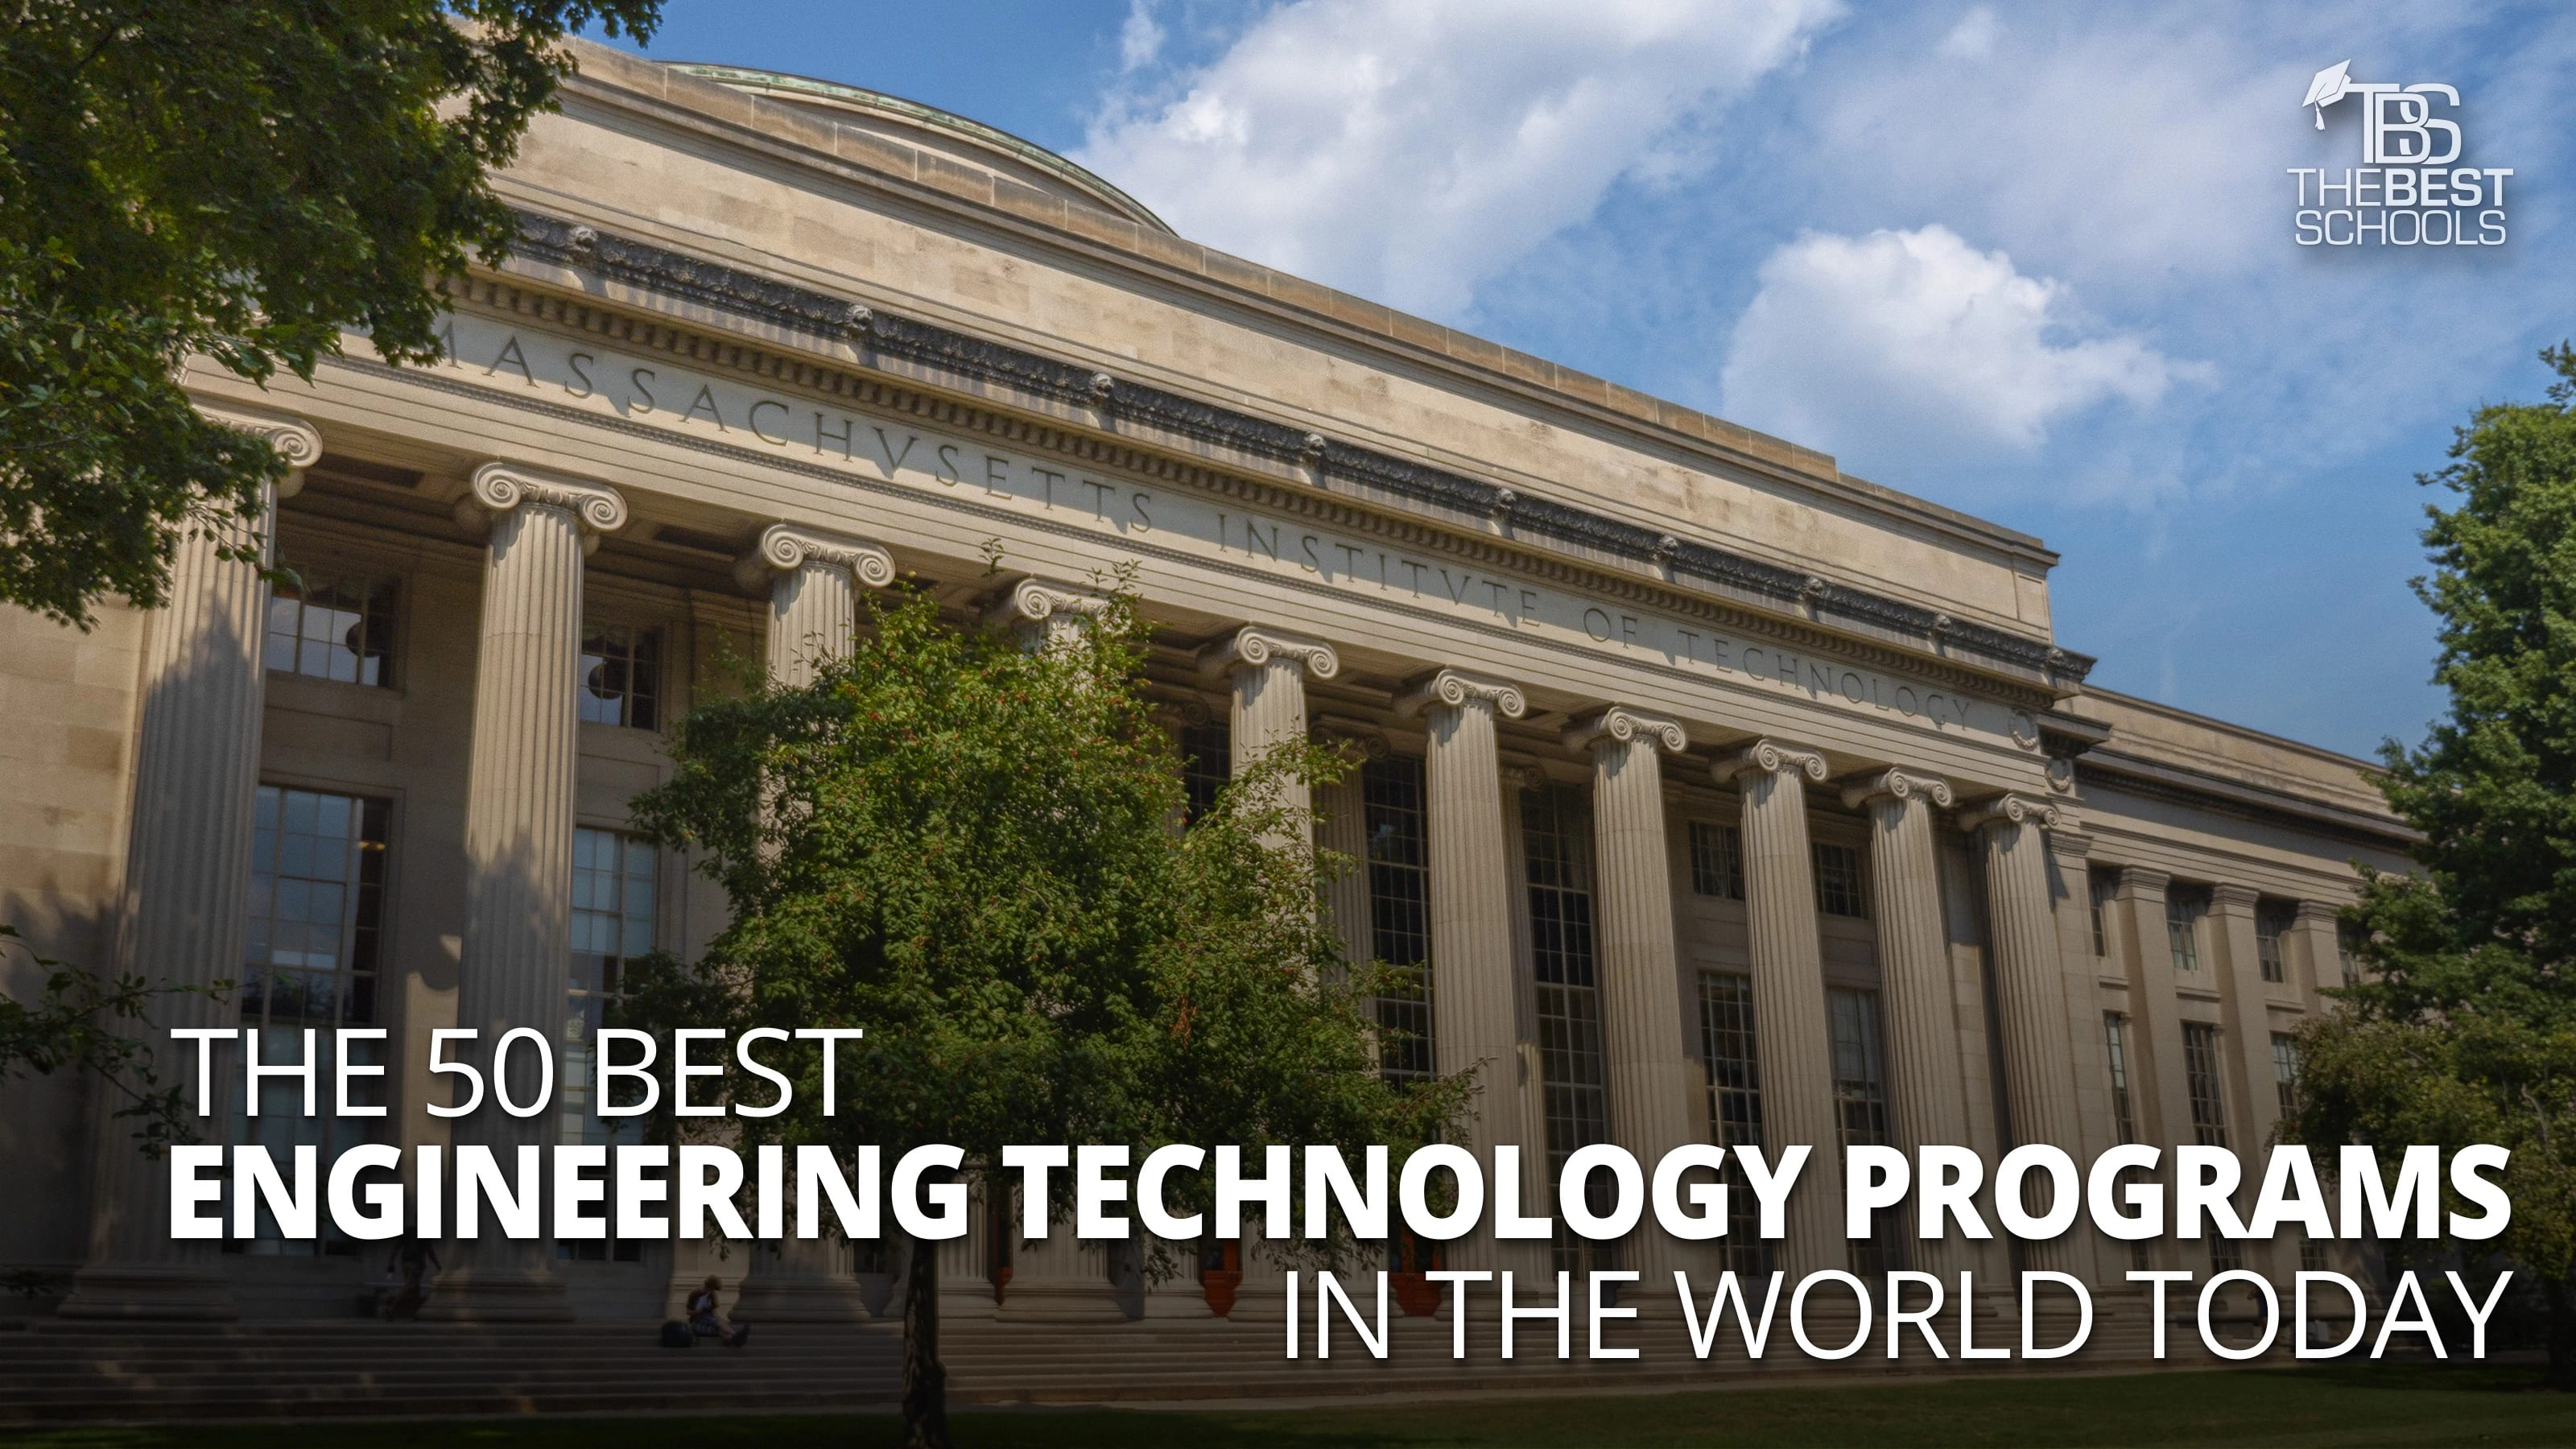 The 50 Best Engineering Technology Programs in the World